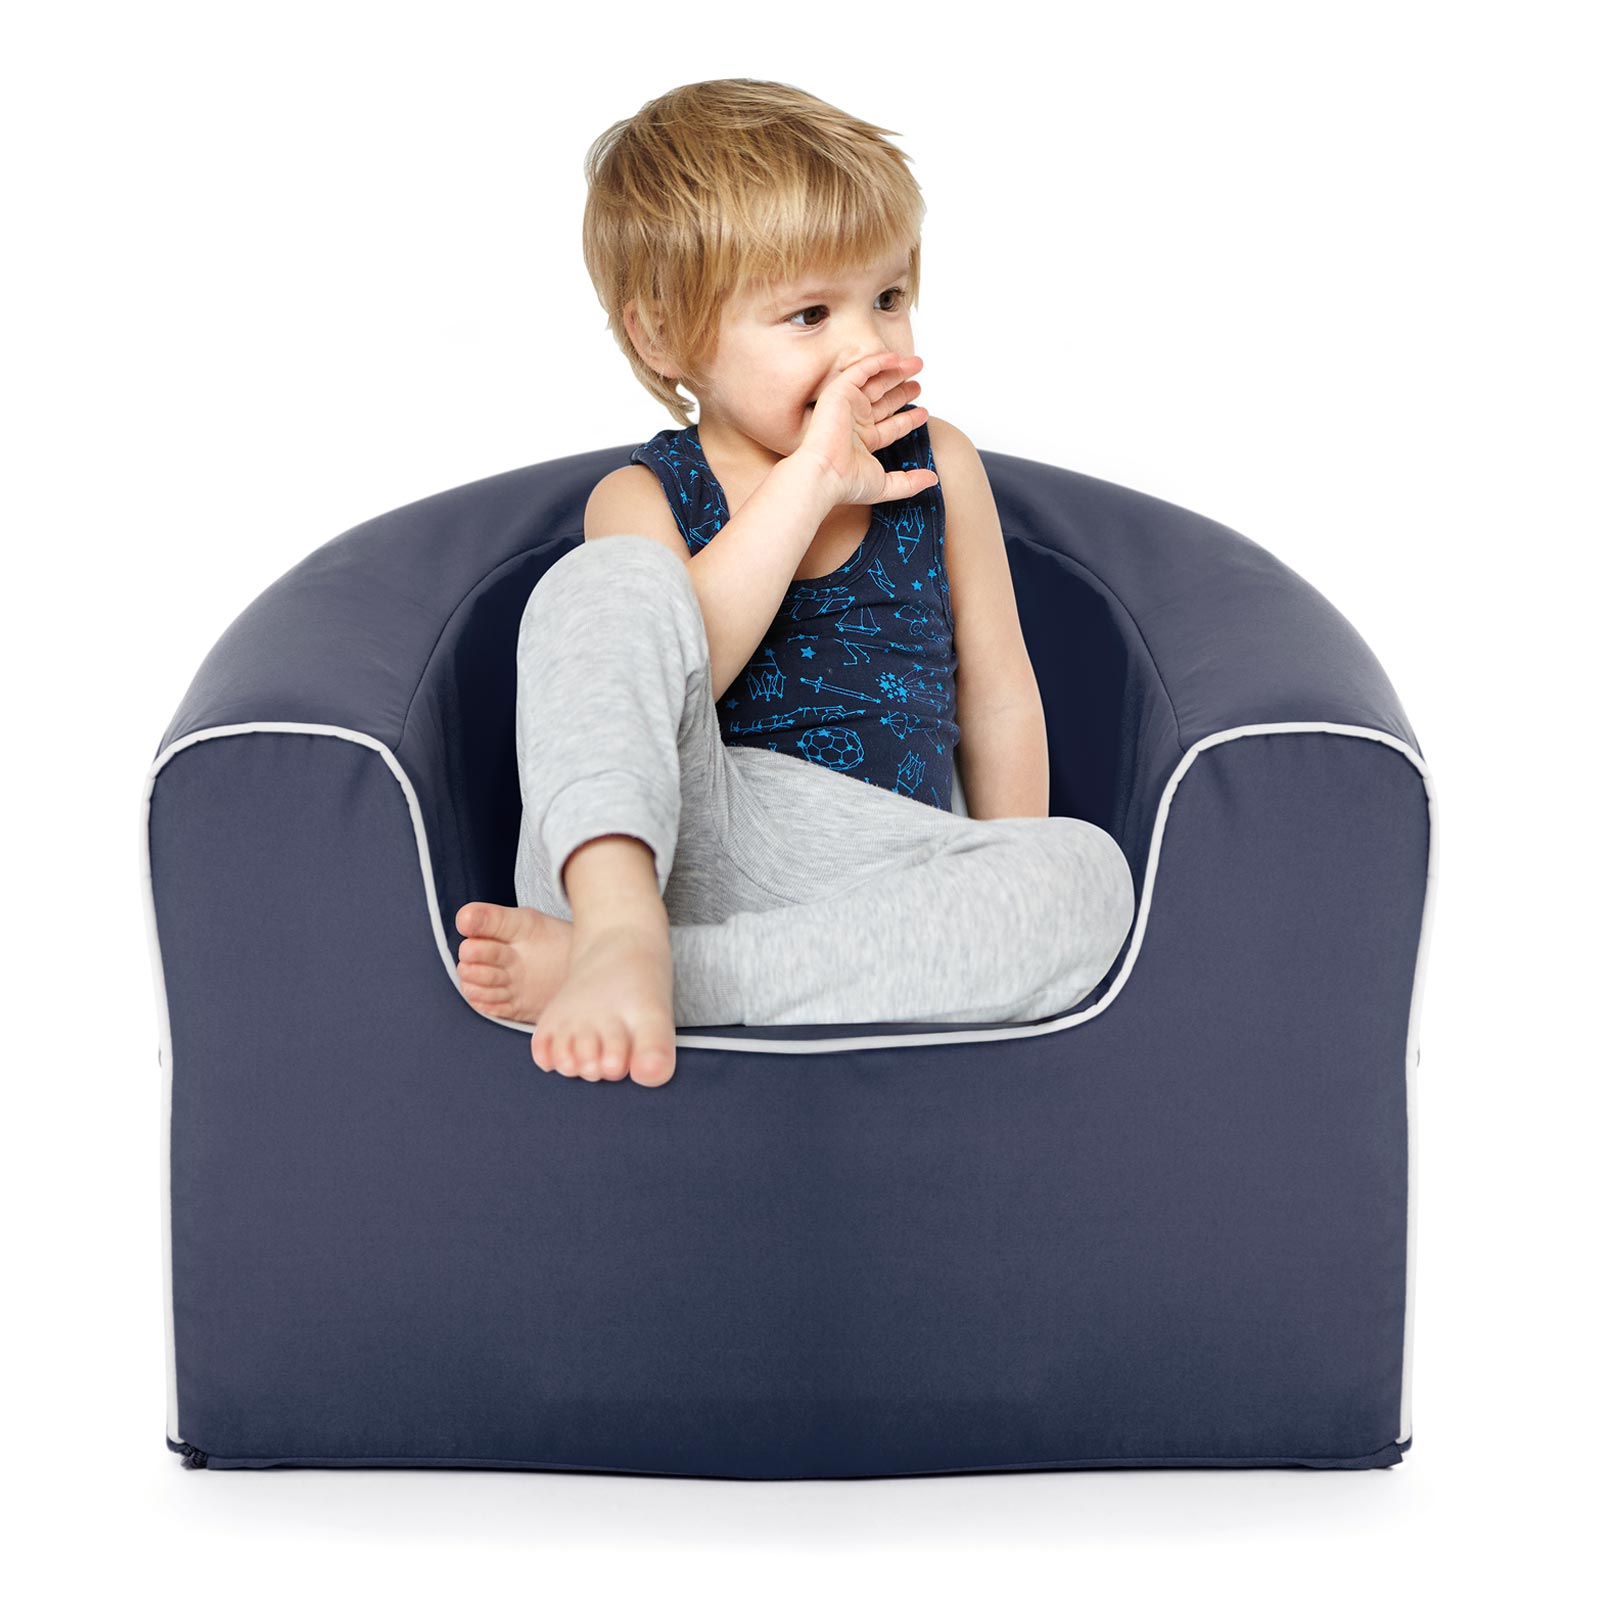 Small child sits on a navy pop armchair foam seat